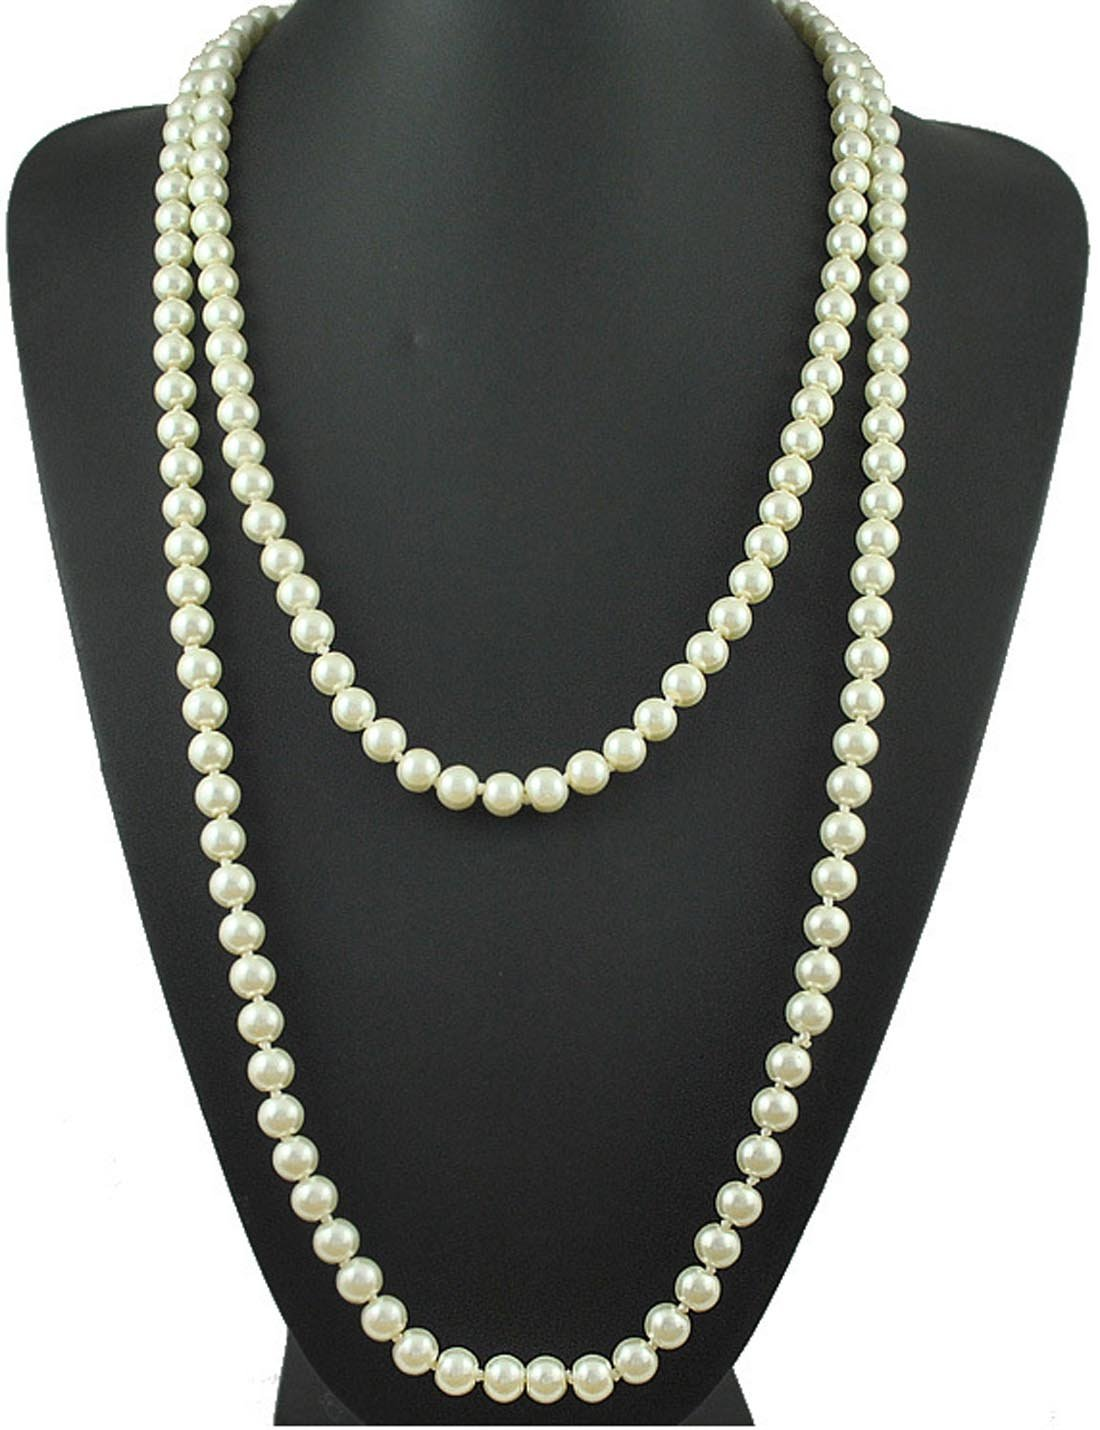 """ART DECO Faux Pearls Flapper Beads Cluster Long Pearl Necklace Great Gatsby 55"""" (Pearl White)"""